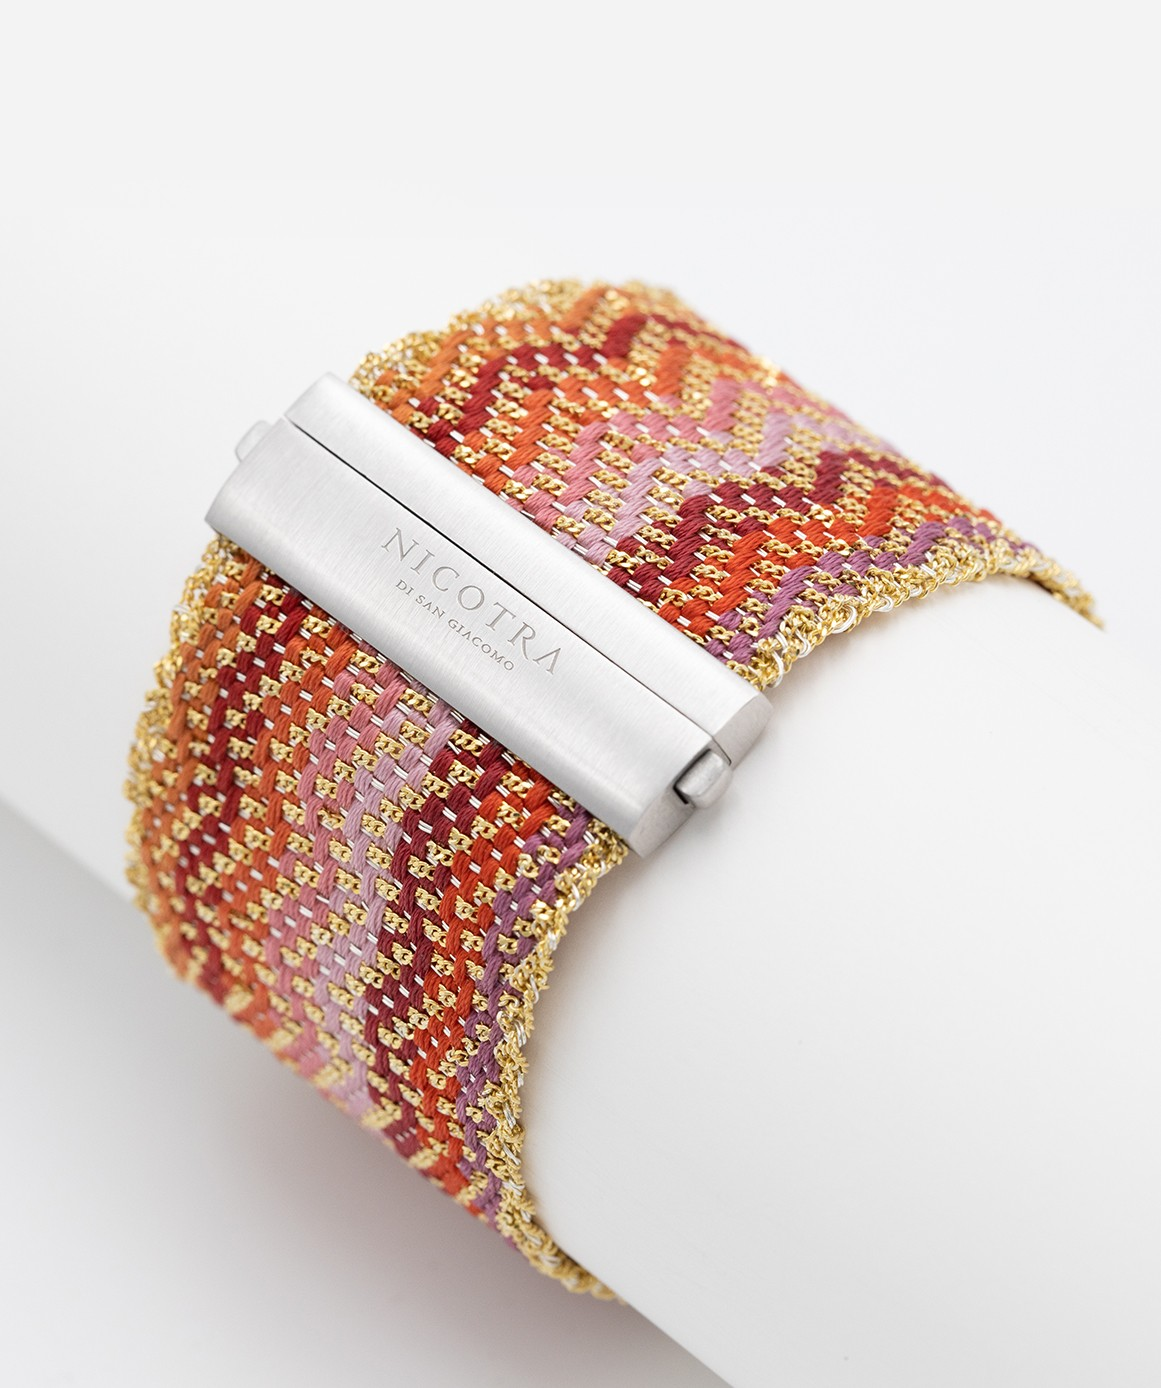 ZIG ZAG Bracelet in Sterling Silver 18Kt. Gold plated. Fabric: Silk Shades of Red